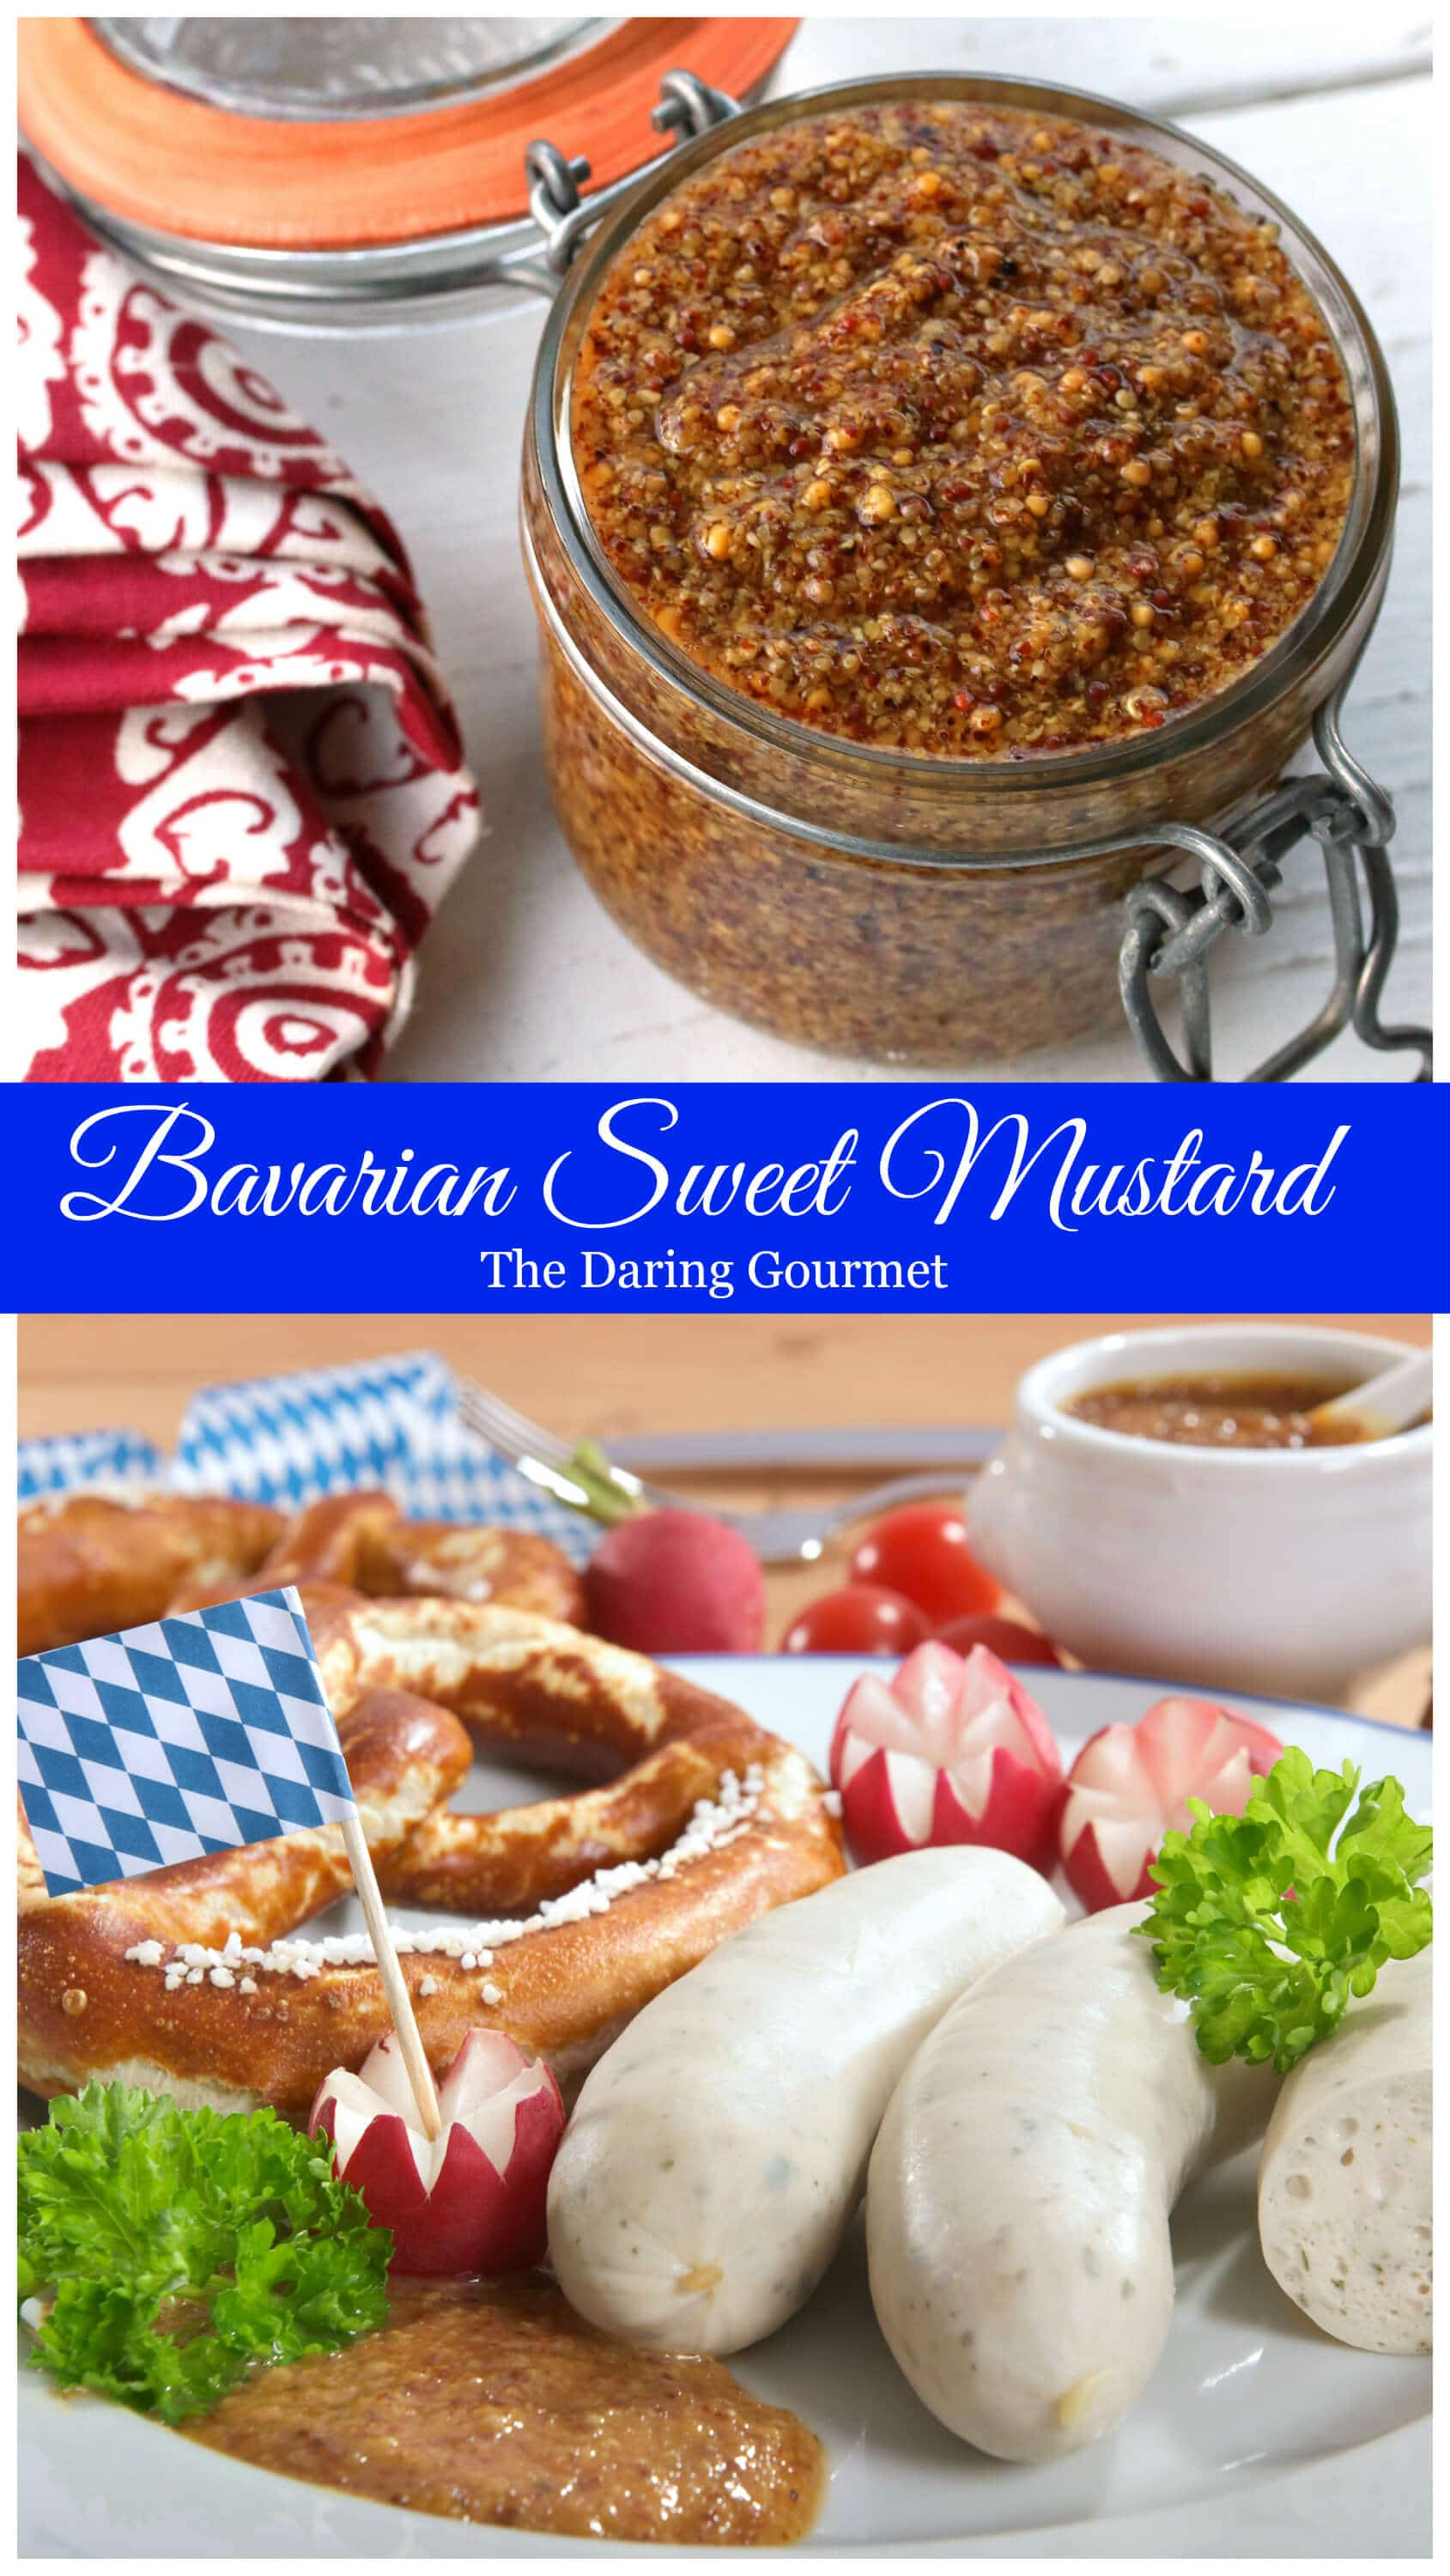 german mustard recipe bavarian sweet octoberfest traditional authentic weisswurst homemade